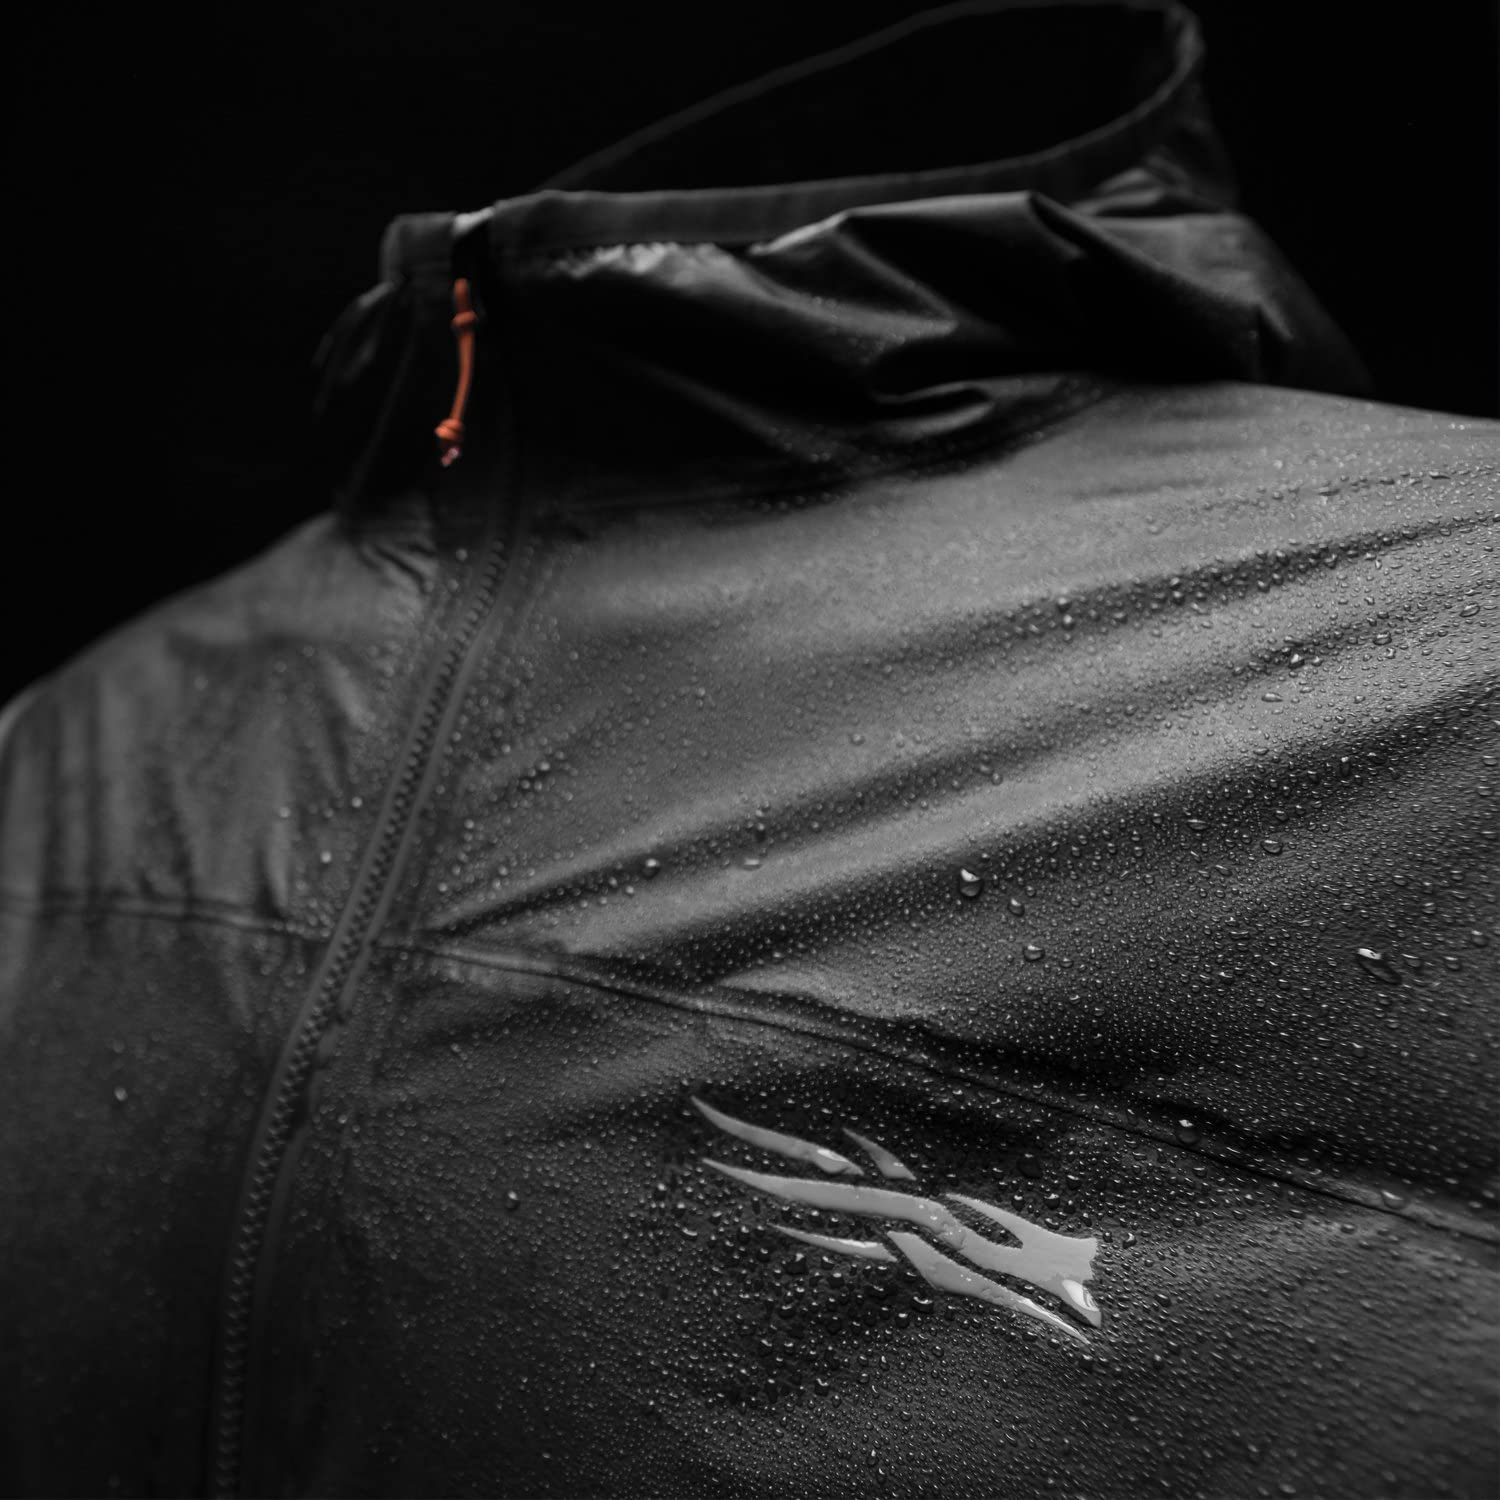 Sitka Gear Mens Packable Gore-Tex Waterproof Windproof Training Hooded Vapor SD Jacket, Black, M